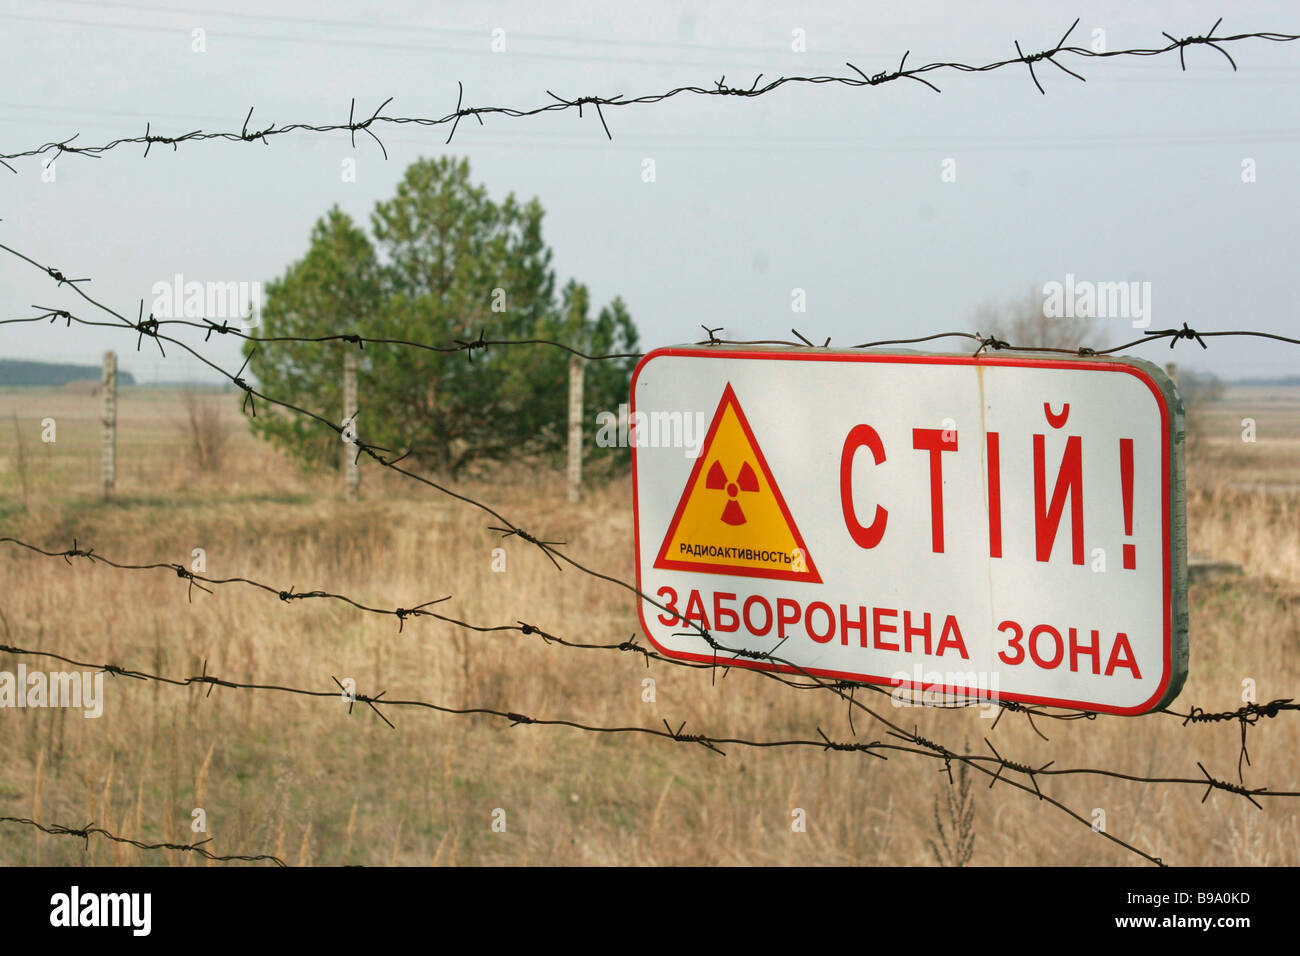 Barbed wire entanglement on the approaches to the Chernobyl nuclear plant - Stock Image